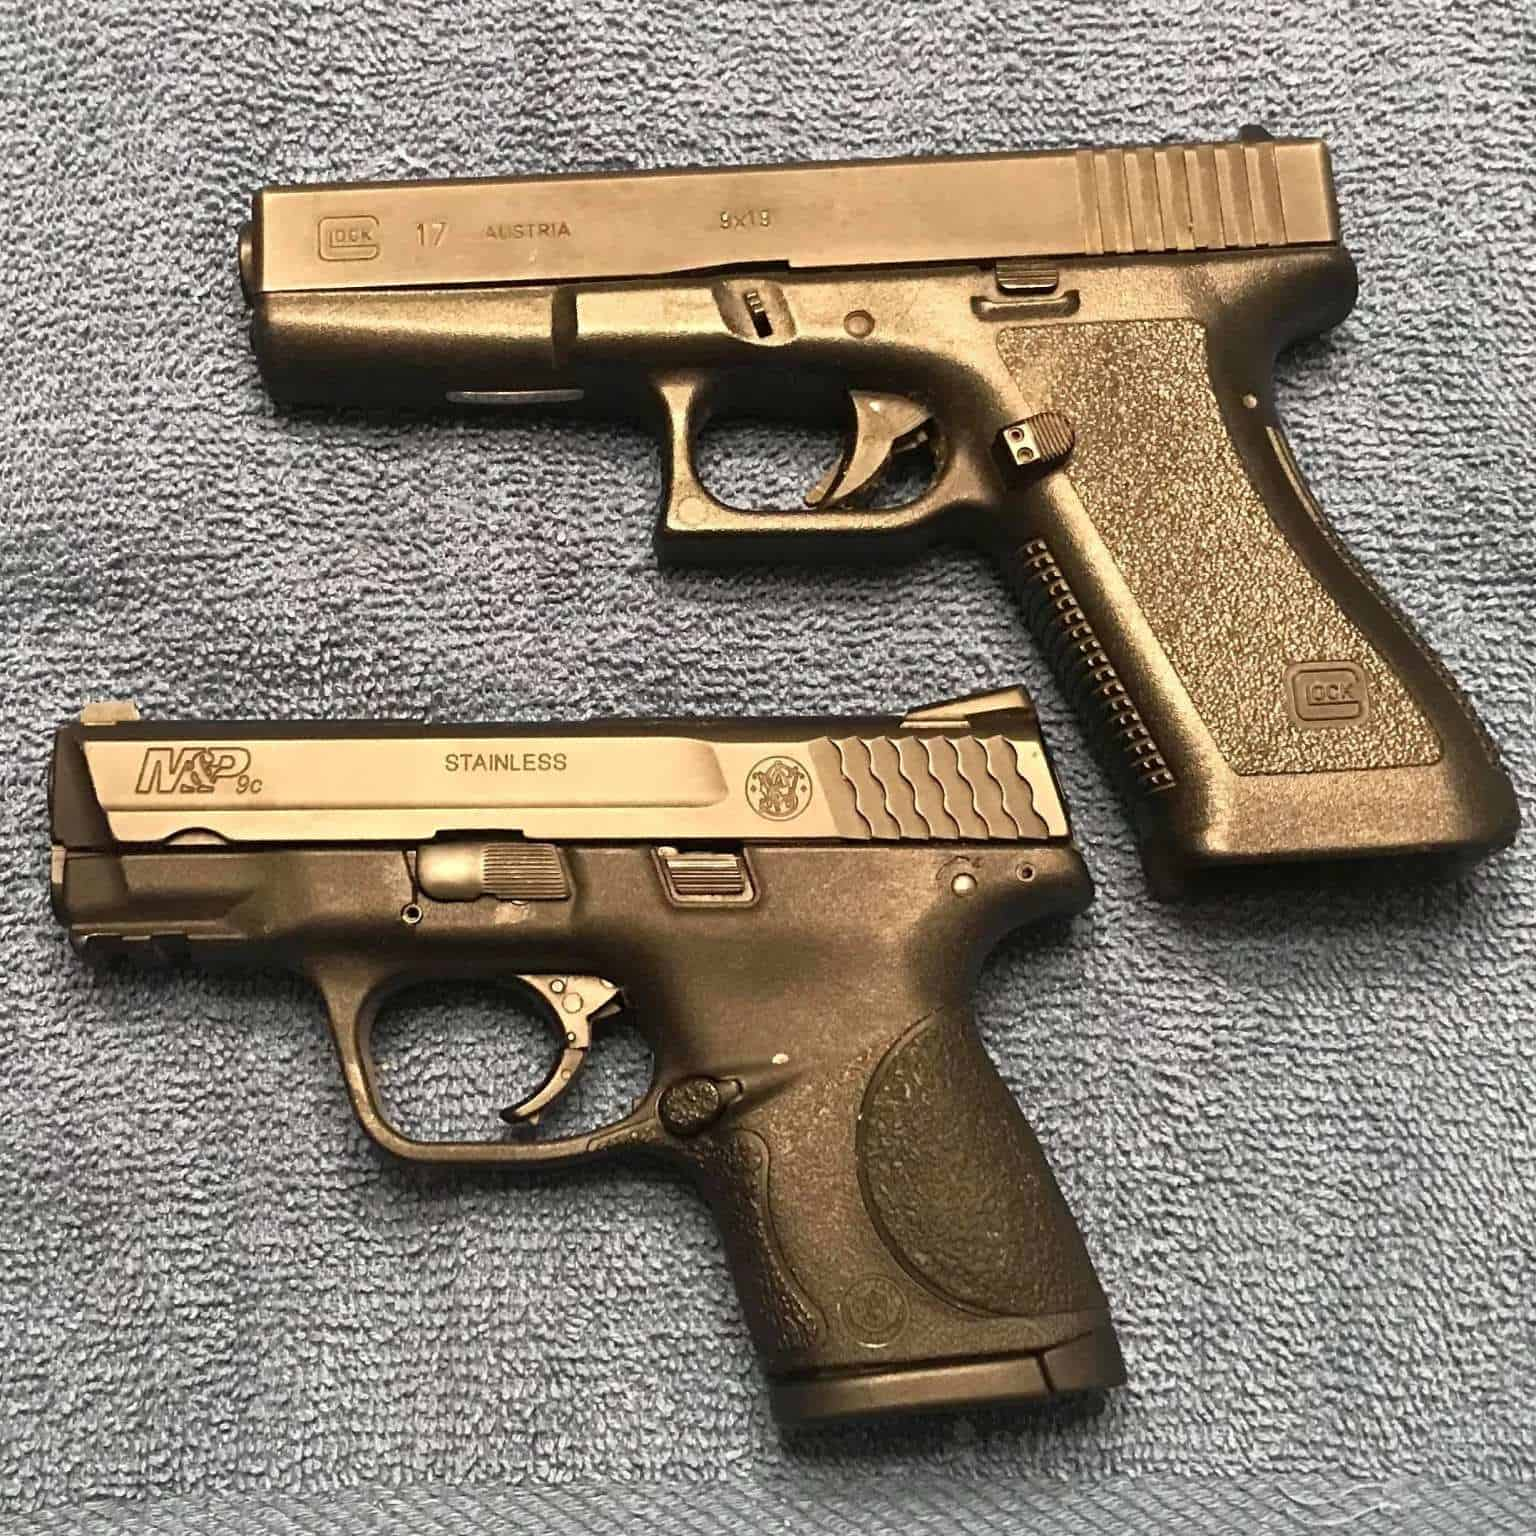 Glock 17 vs M&P 9